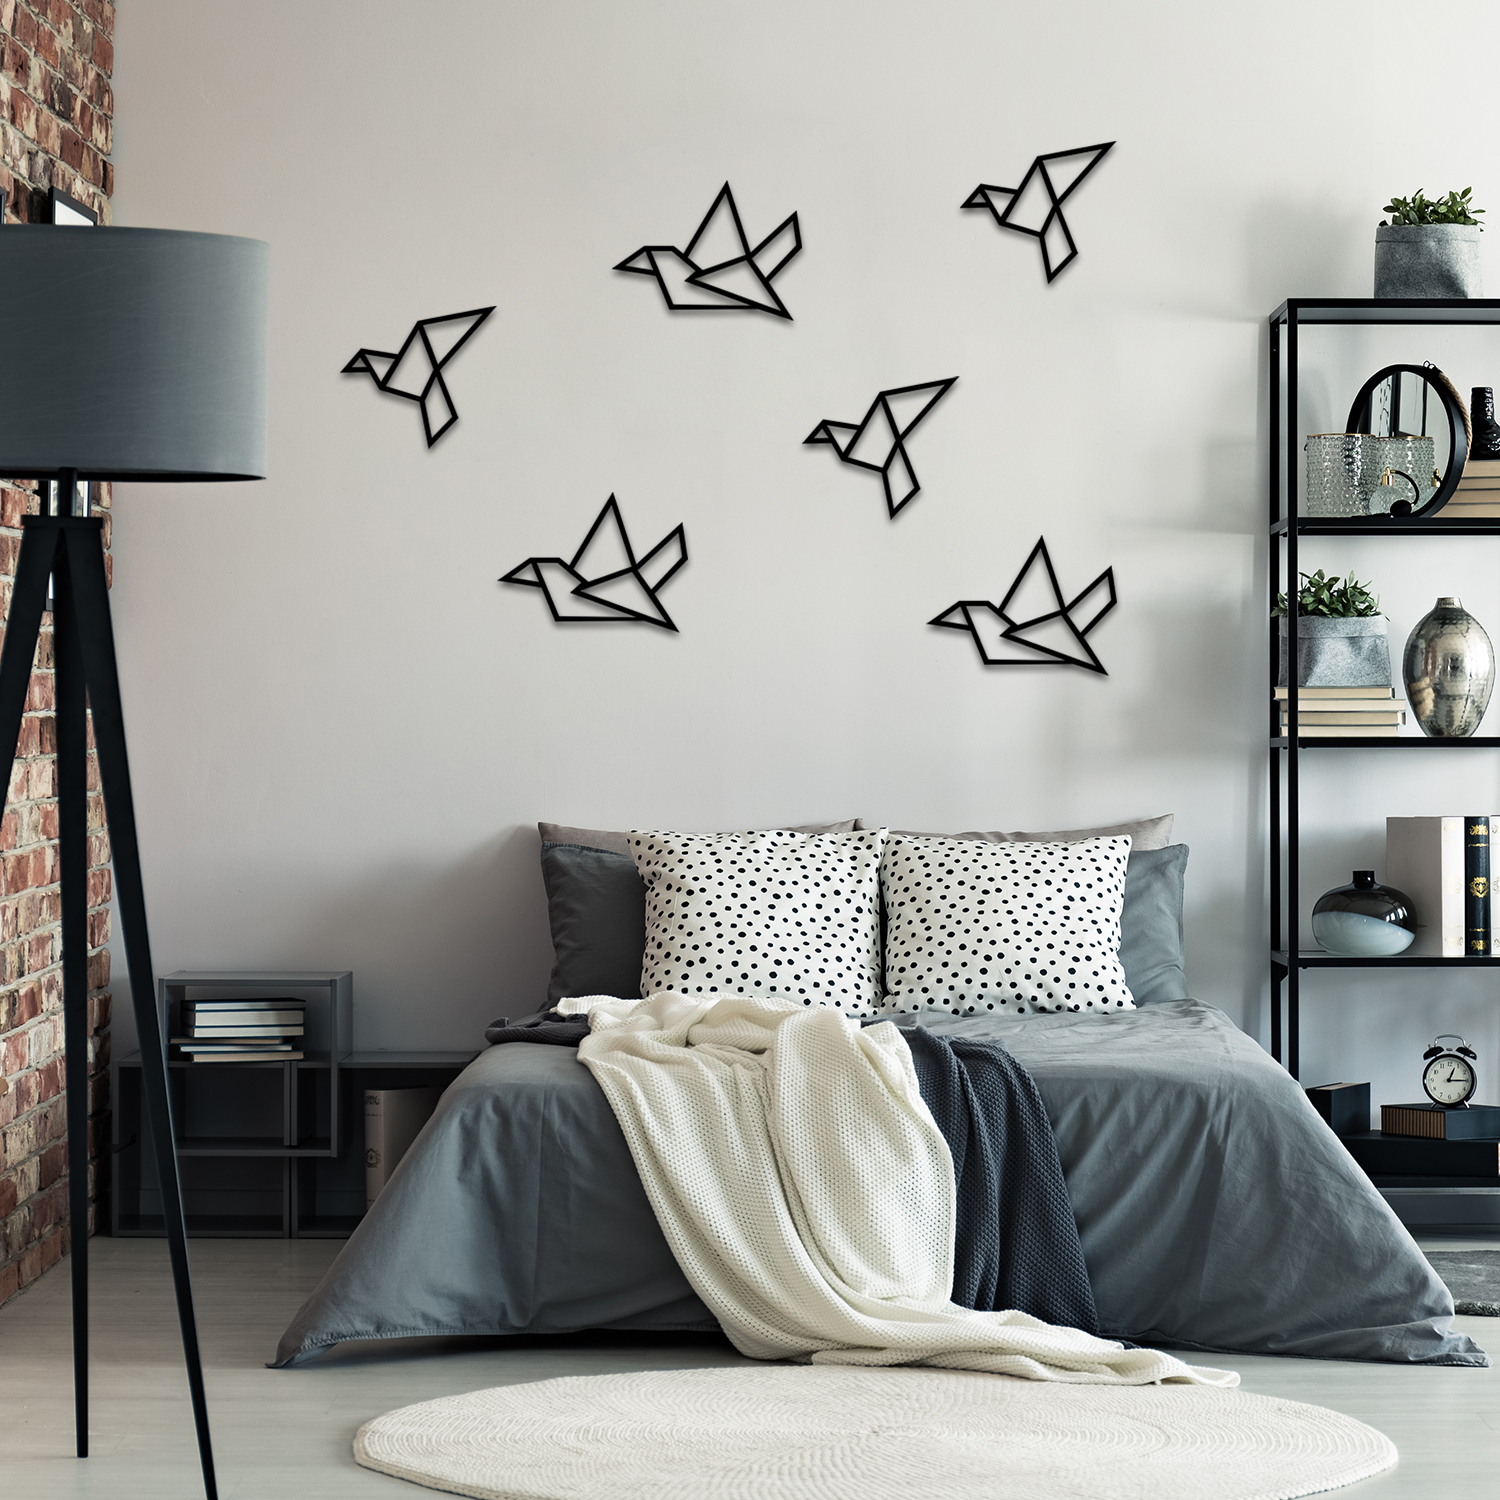 Birds - Metal Wall Decor, Metal Wall Decor, Metal Wall Art